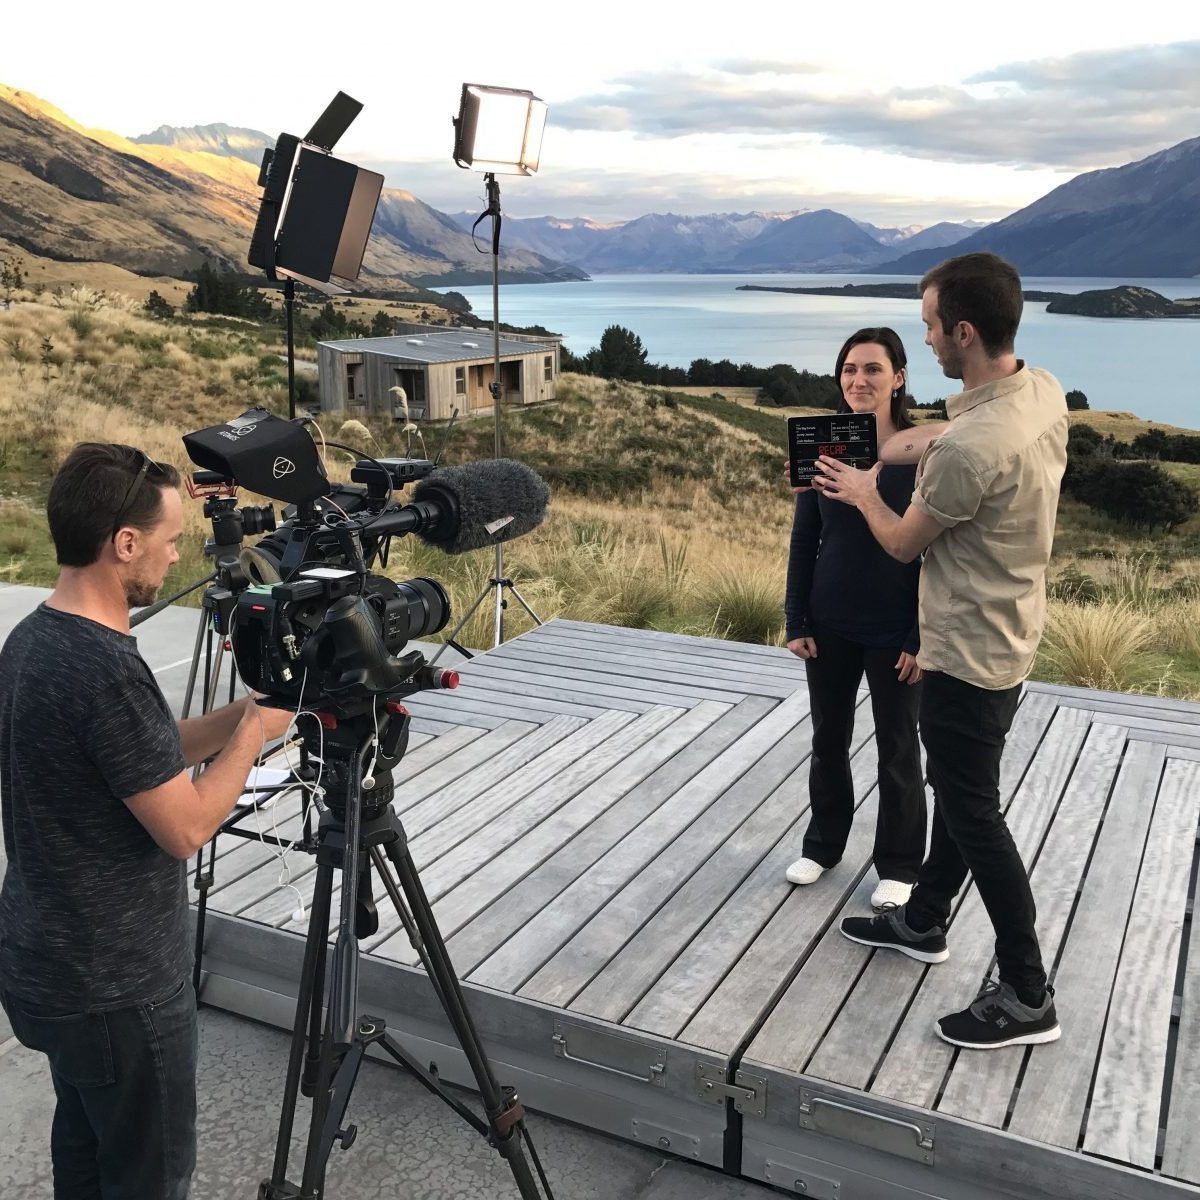 Emma_Ferris_outside_at_Aroha_filming_recap_with_Josh_Wallace_and_Jonny_James_from_Storyworks_889b8bba-19b0-4033-ad7f-27653b42bbd1